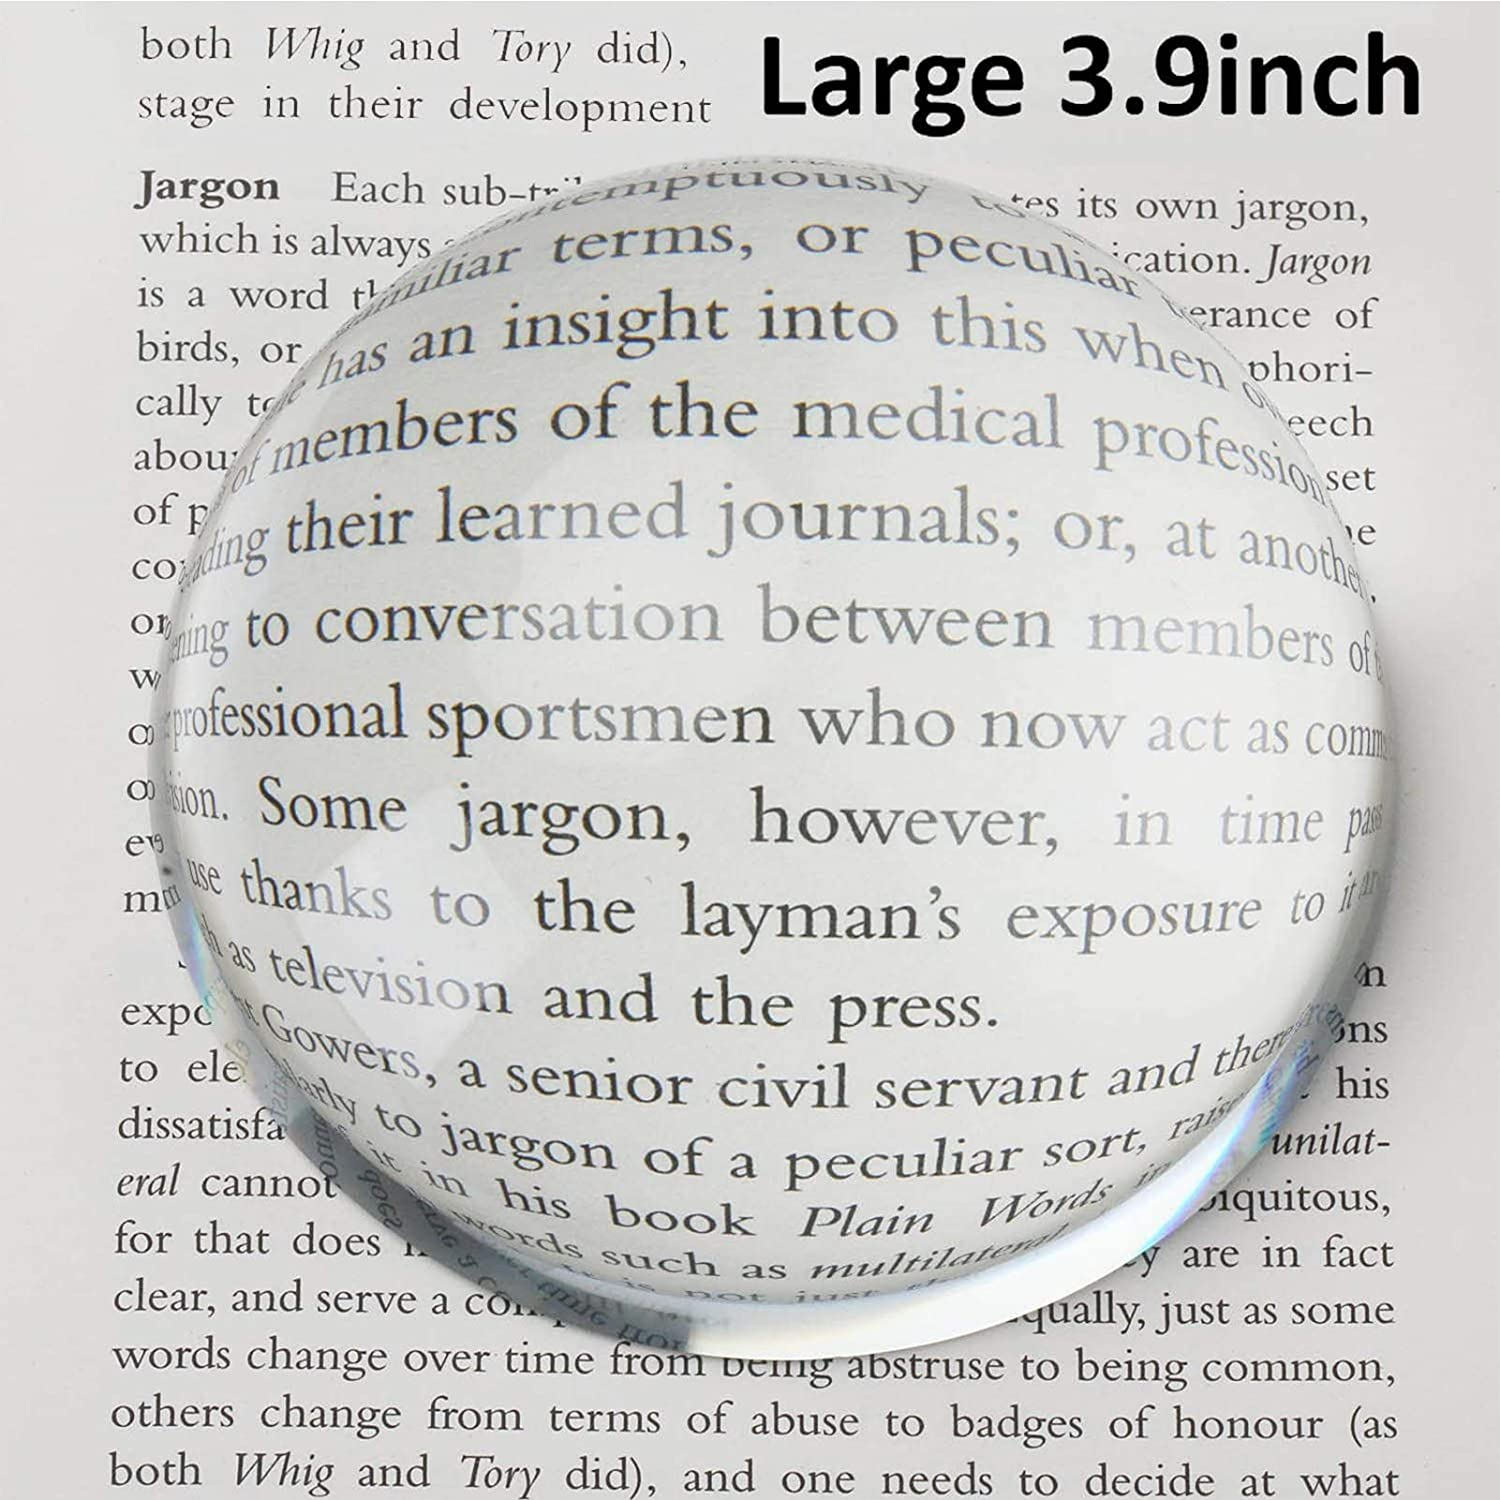 Large 3.9 Inch Glass Dome Magnifier, Paper Weight by Hombae, Genuine Crystal Glass, Easy to Glide Paperweight, Professional Grade Reading Aid for Newspapers, Maps, Books, Christmas Gift